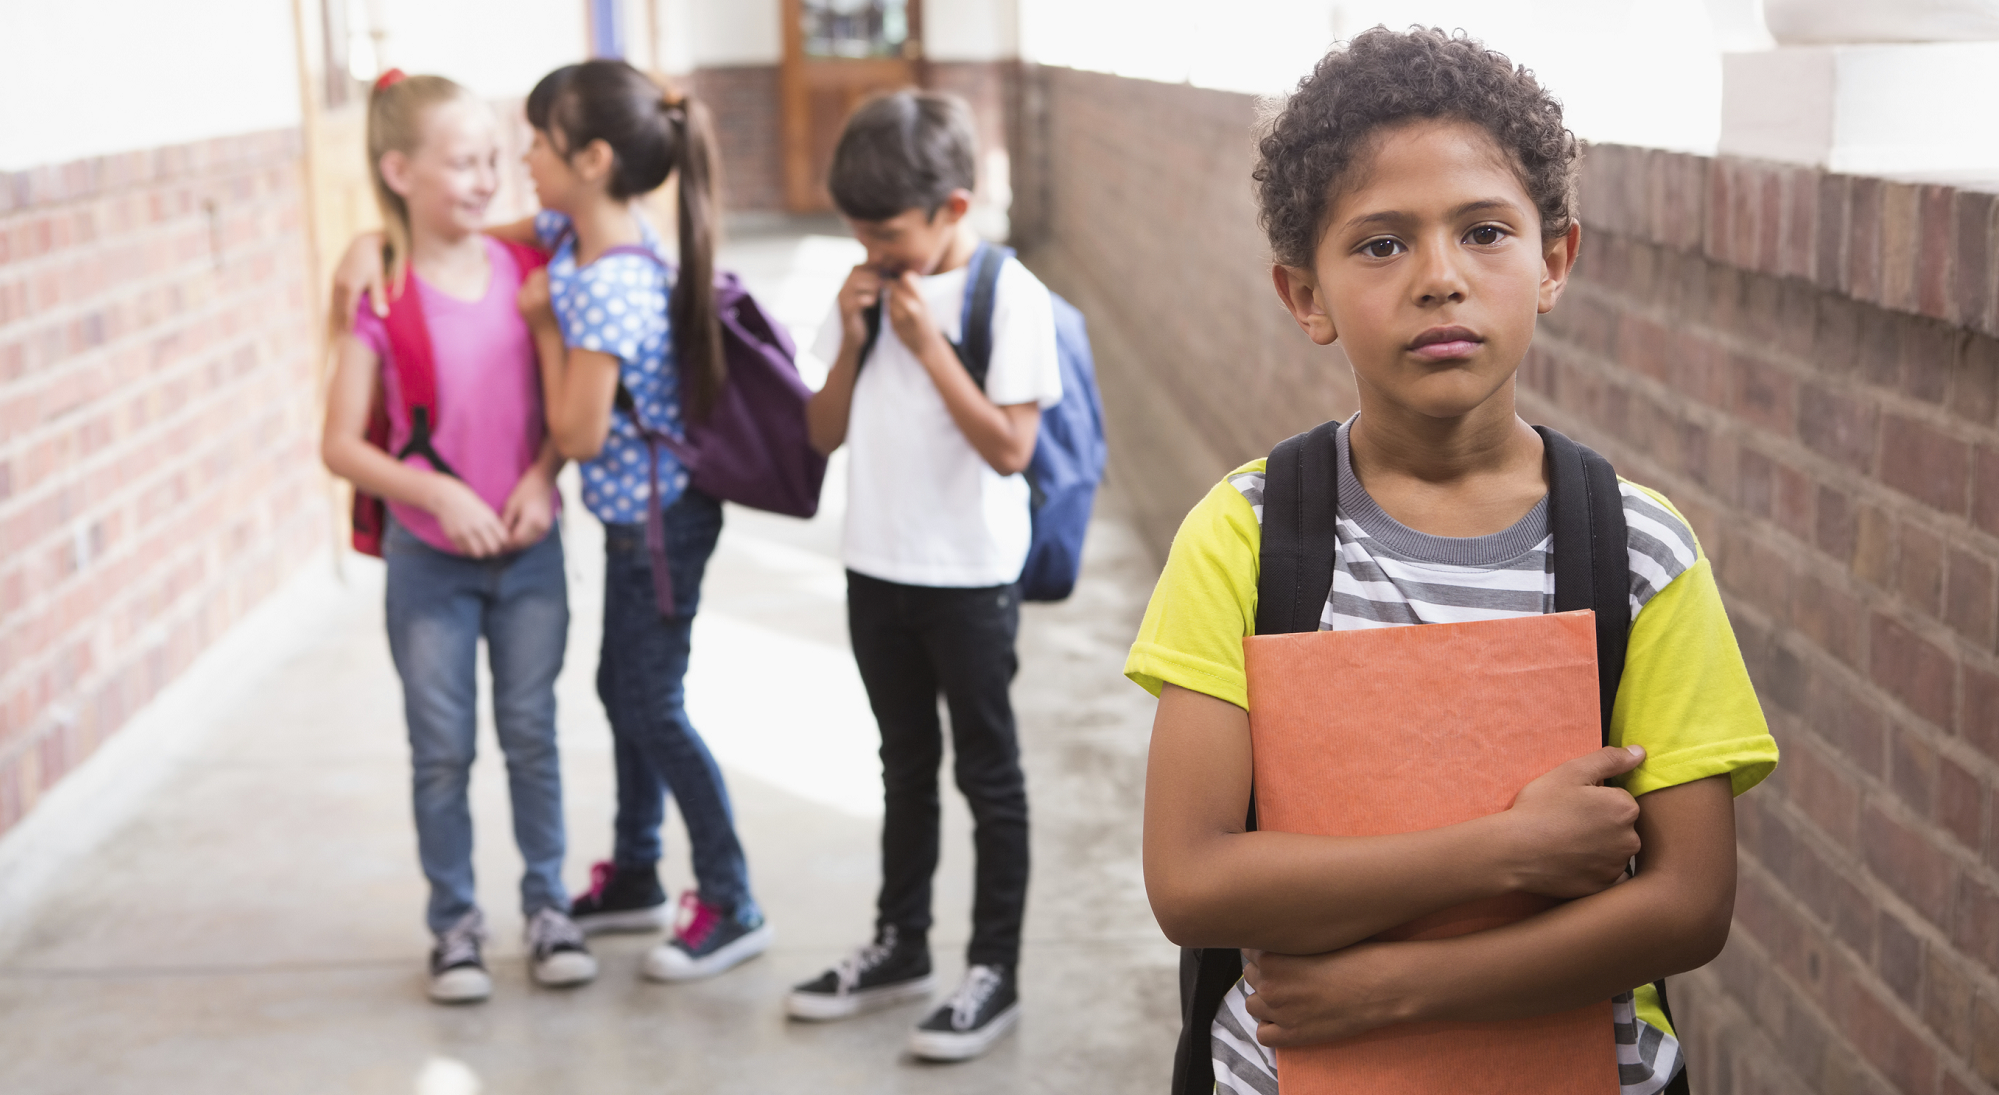 The link between school climate and bullying